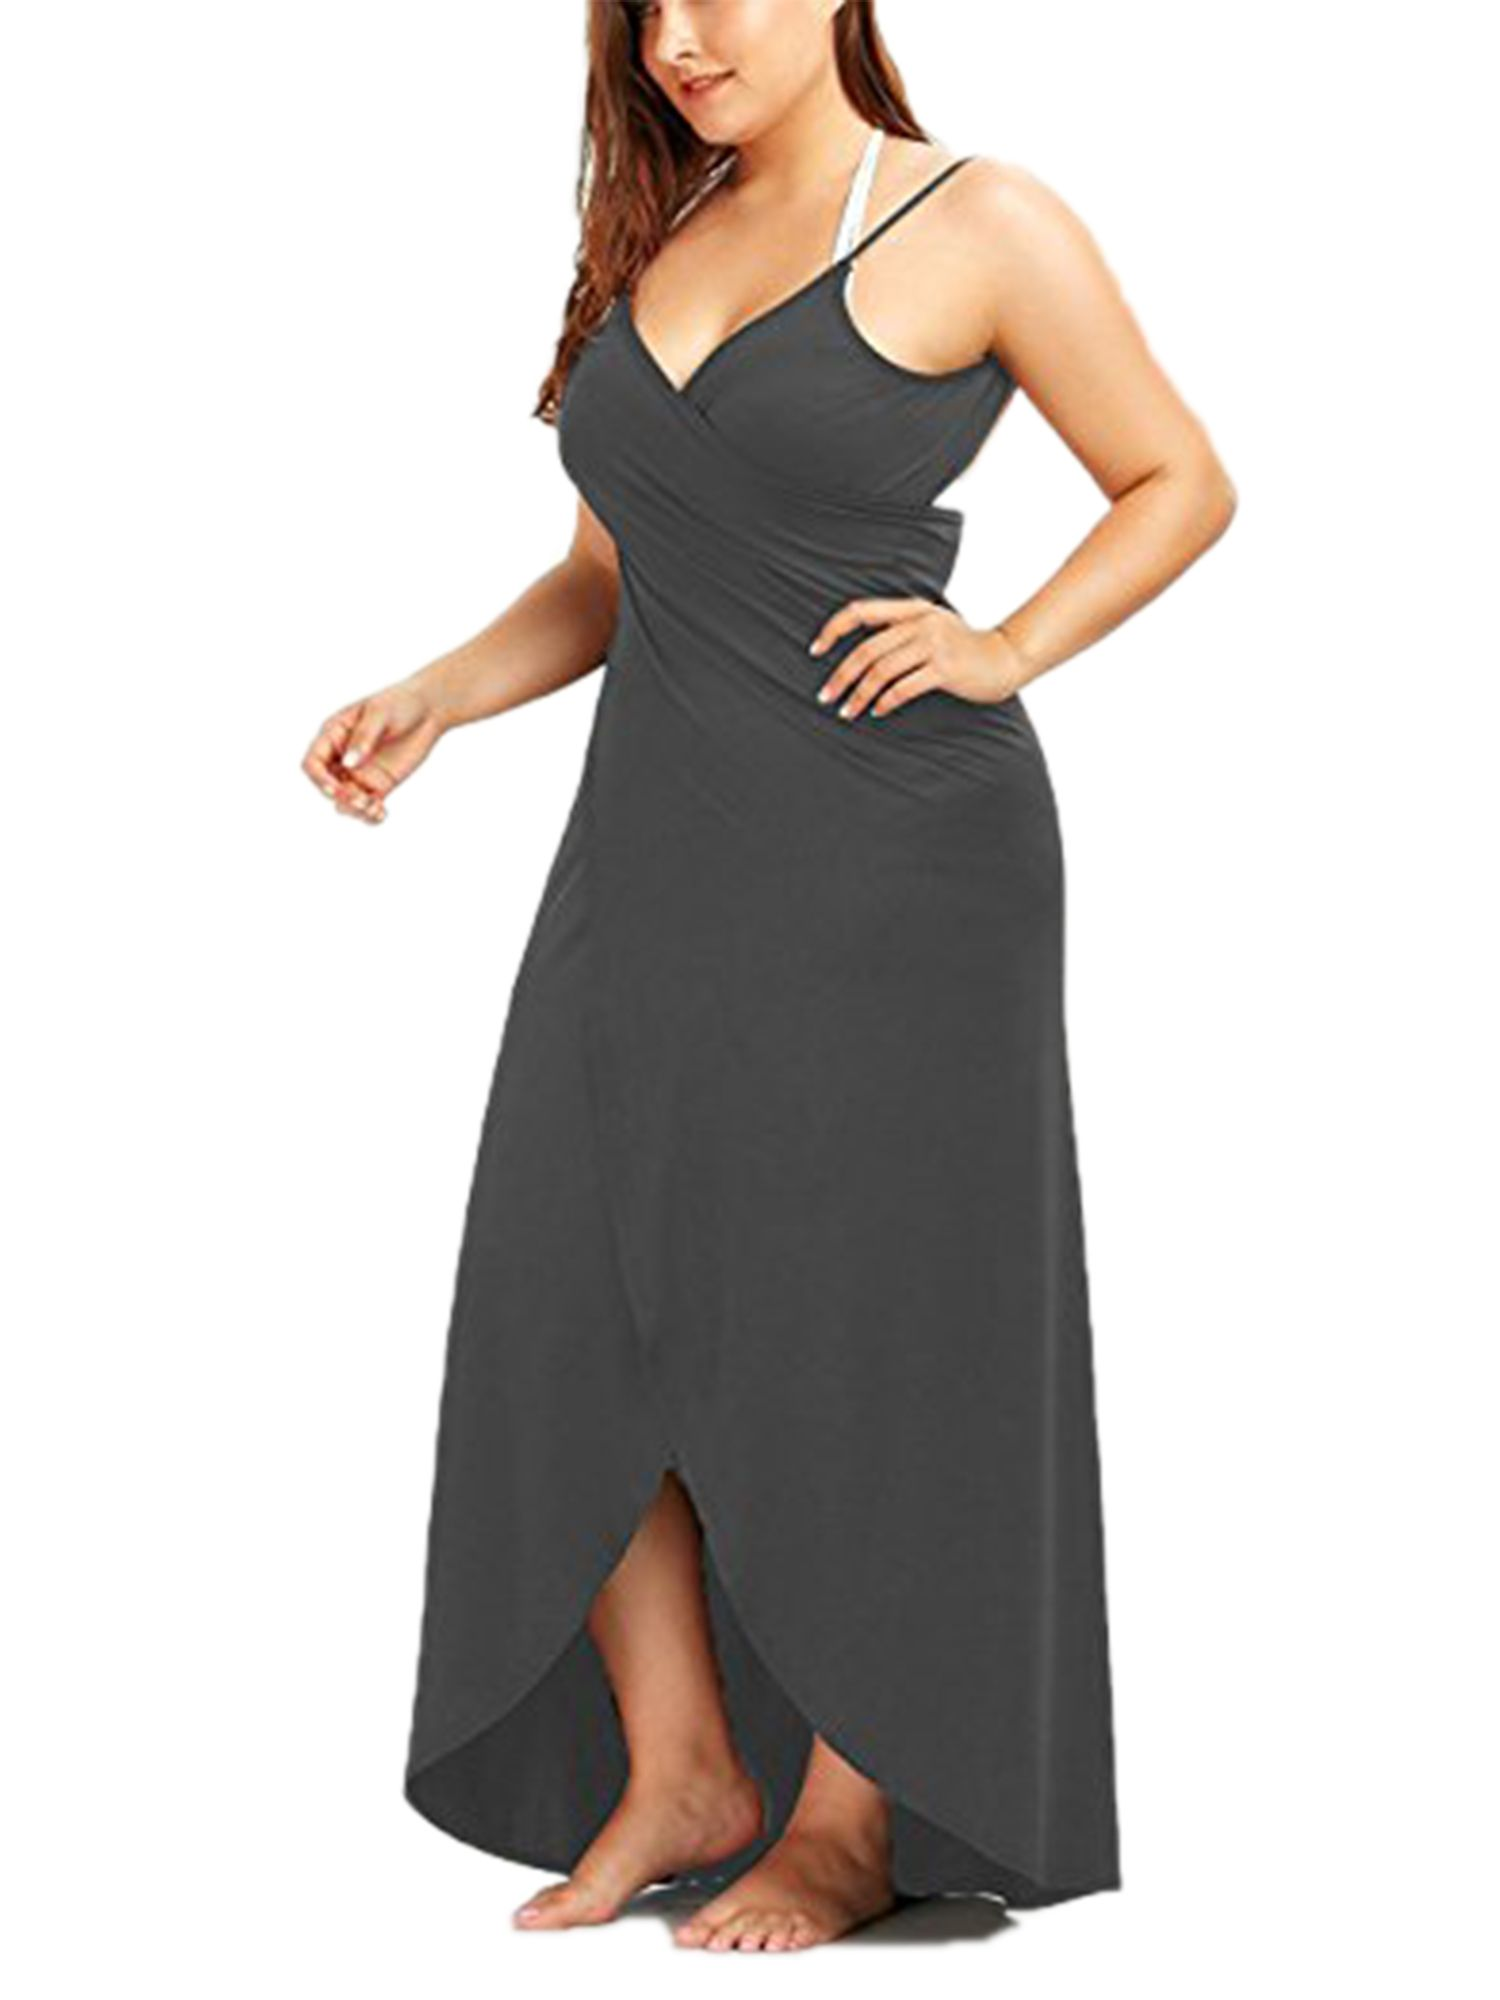 bdb198b9e176e Women s Sexy Deep V-Neckline Maxi Backless Beach Dress Bikini Wrap Swimsuit  Strap Cover Up